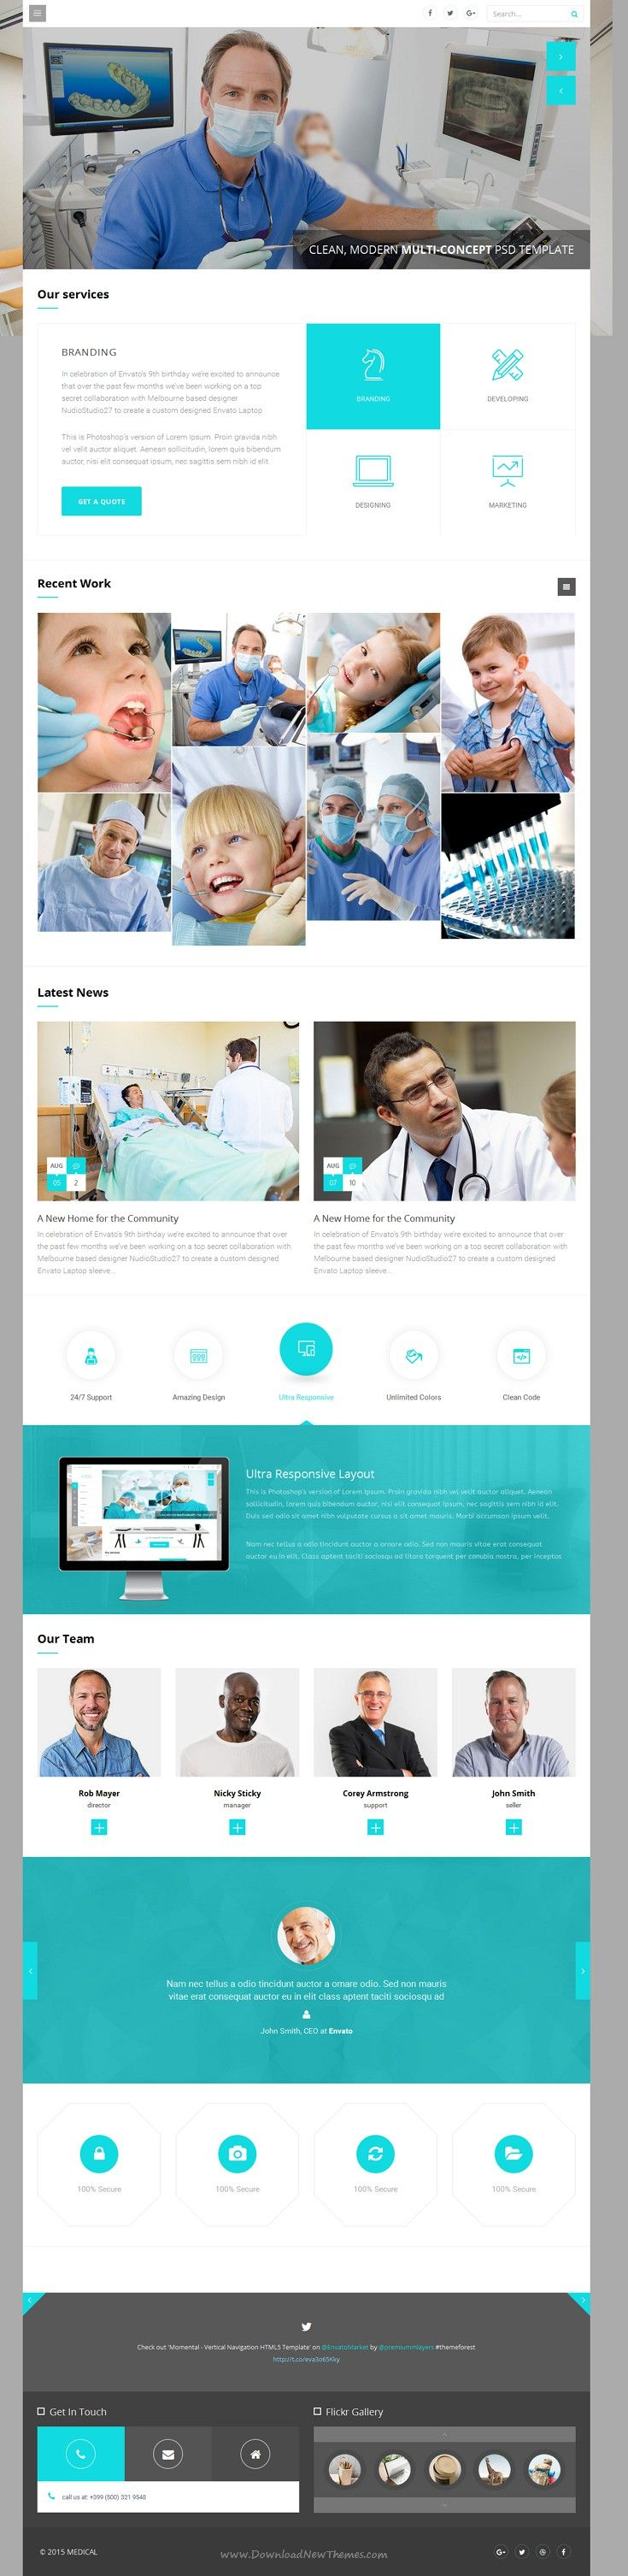 Wise is Multi-Concept Bootstrap HTML Template for multipurpose #website. It has 7 stunning homepage layouts and amazing features. #Medical #hospital Download Now!